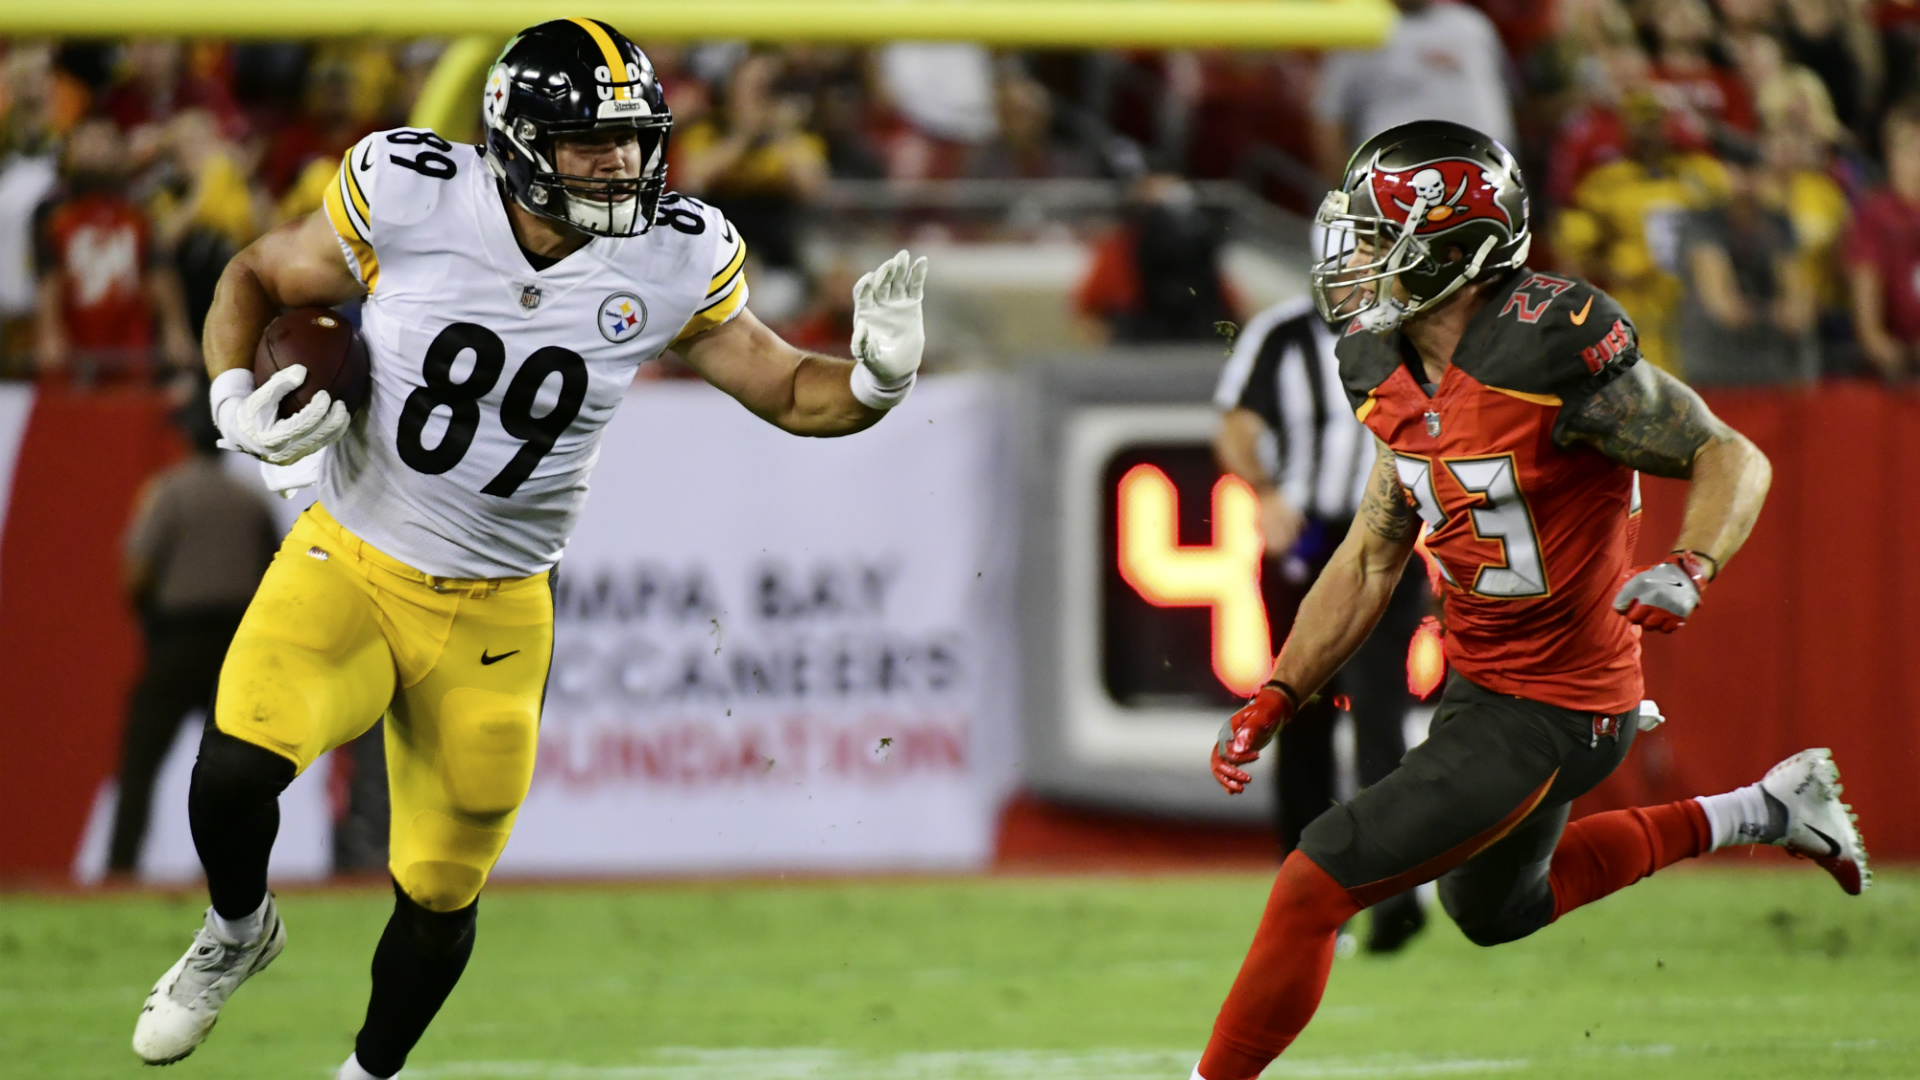 b4879aa5 Steelers vs. Buccaneers: Score, results, highlights from Monday ...